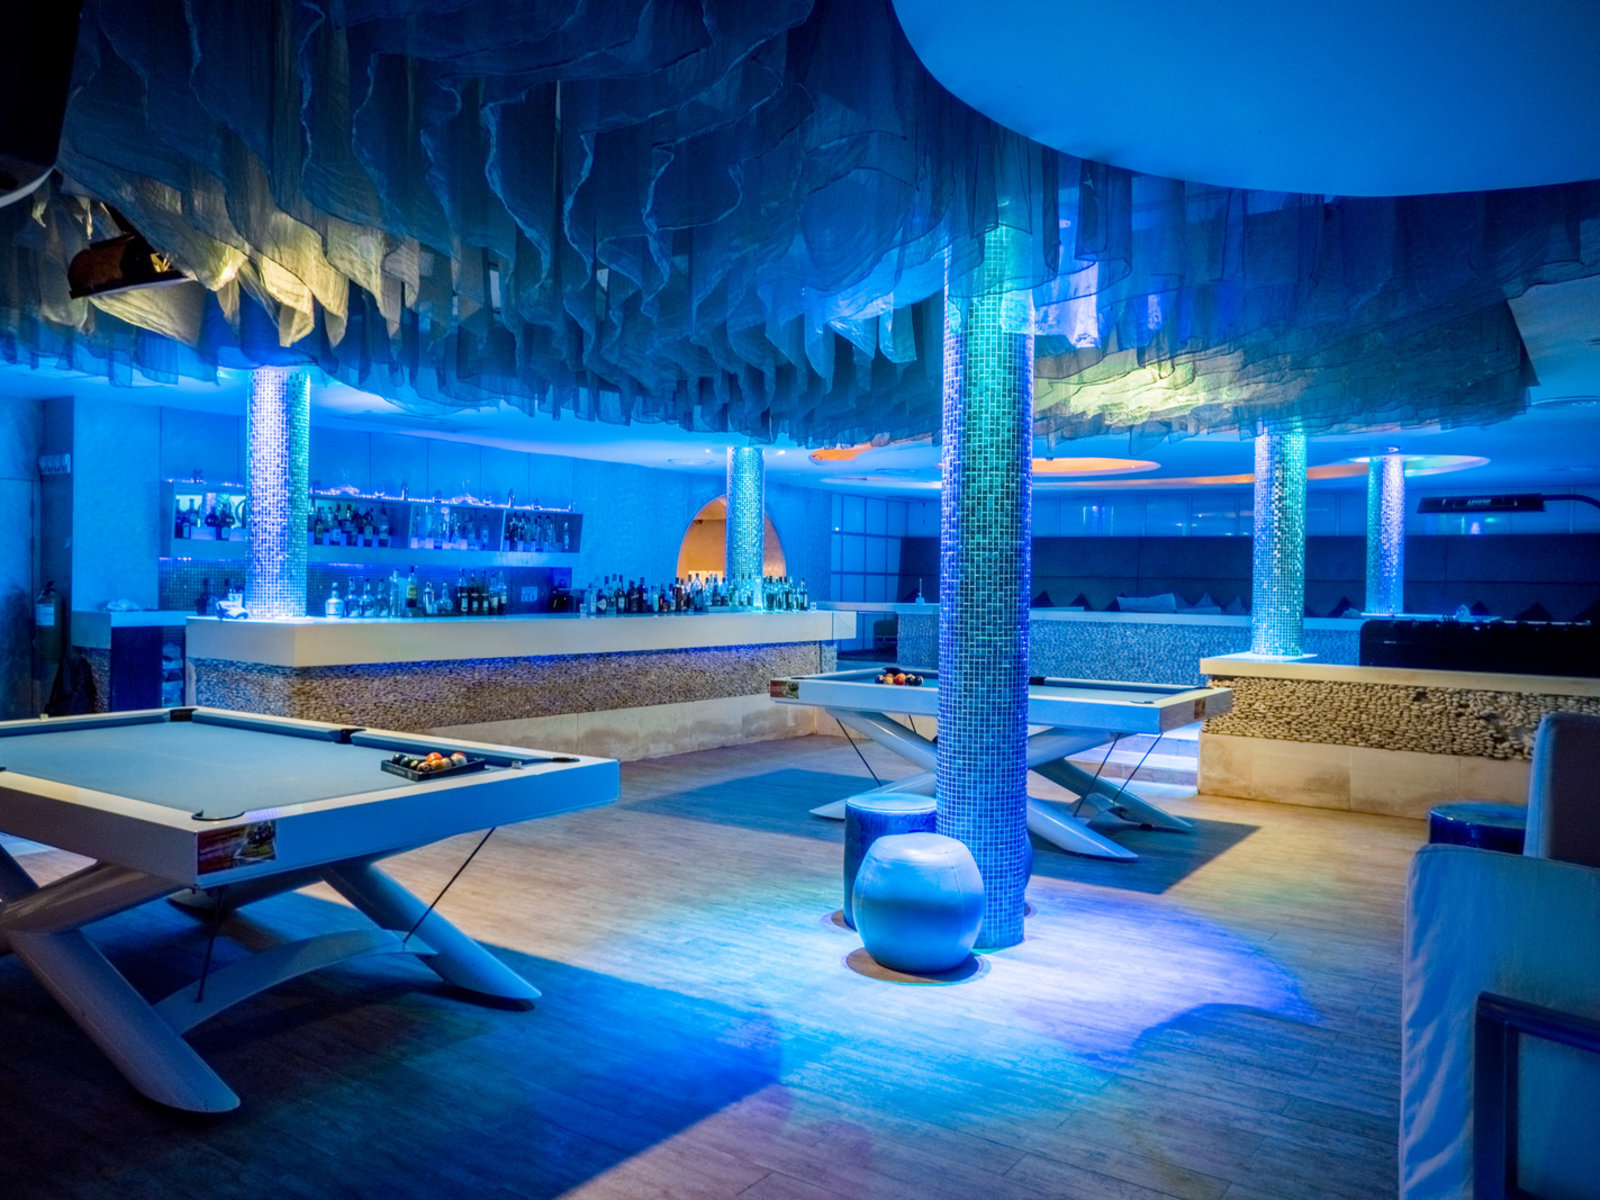 Deep Blu Bar & Lounge